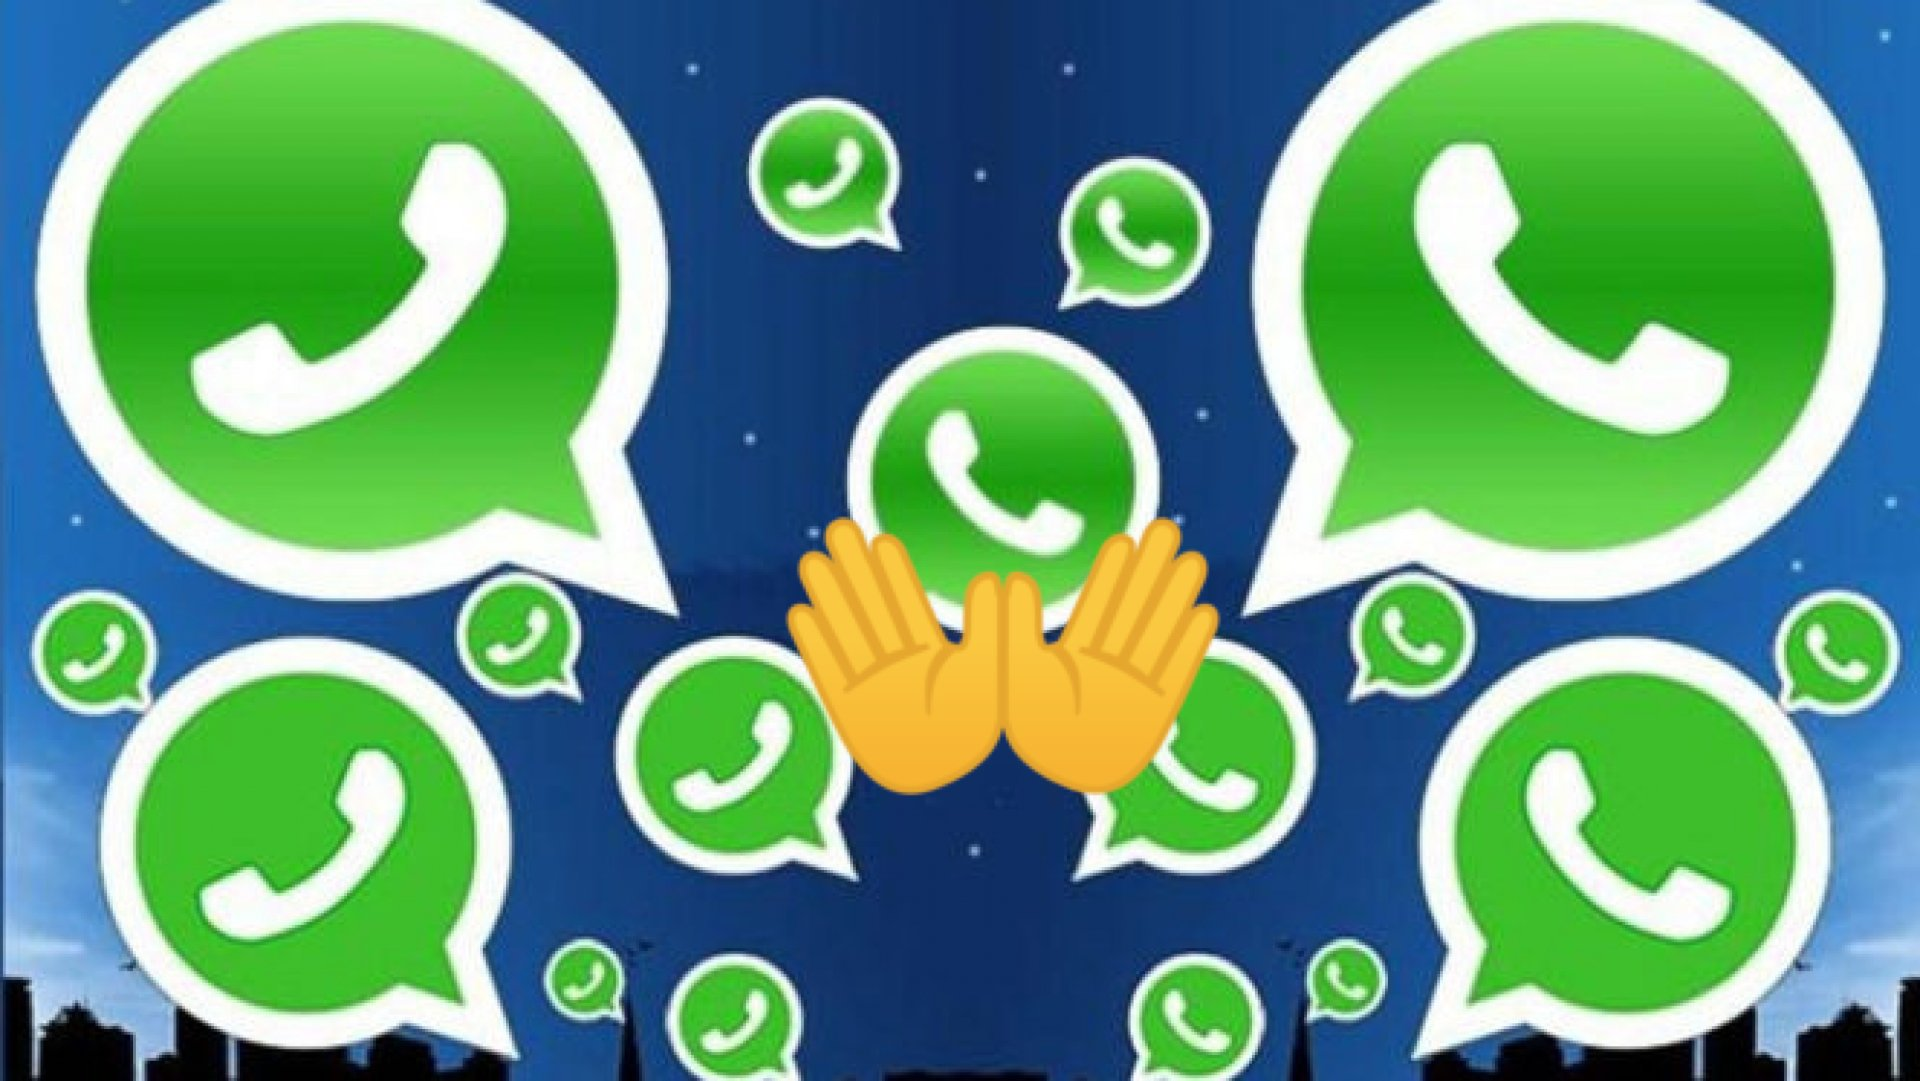 WhatsApp - Download here on iPhone, Android or PC